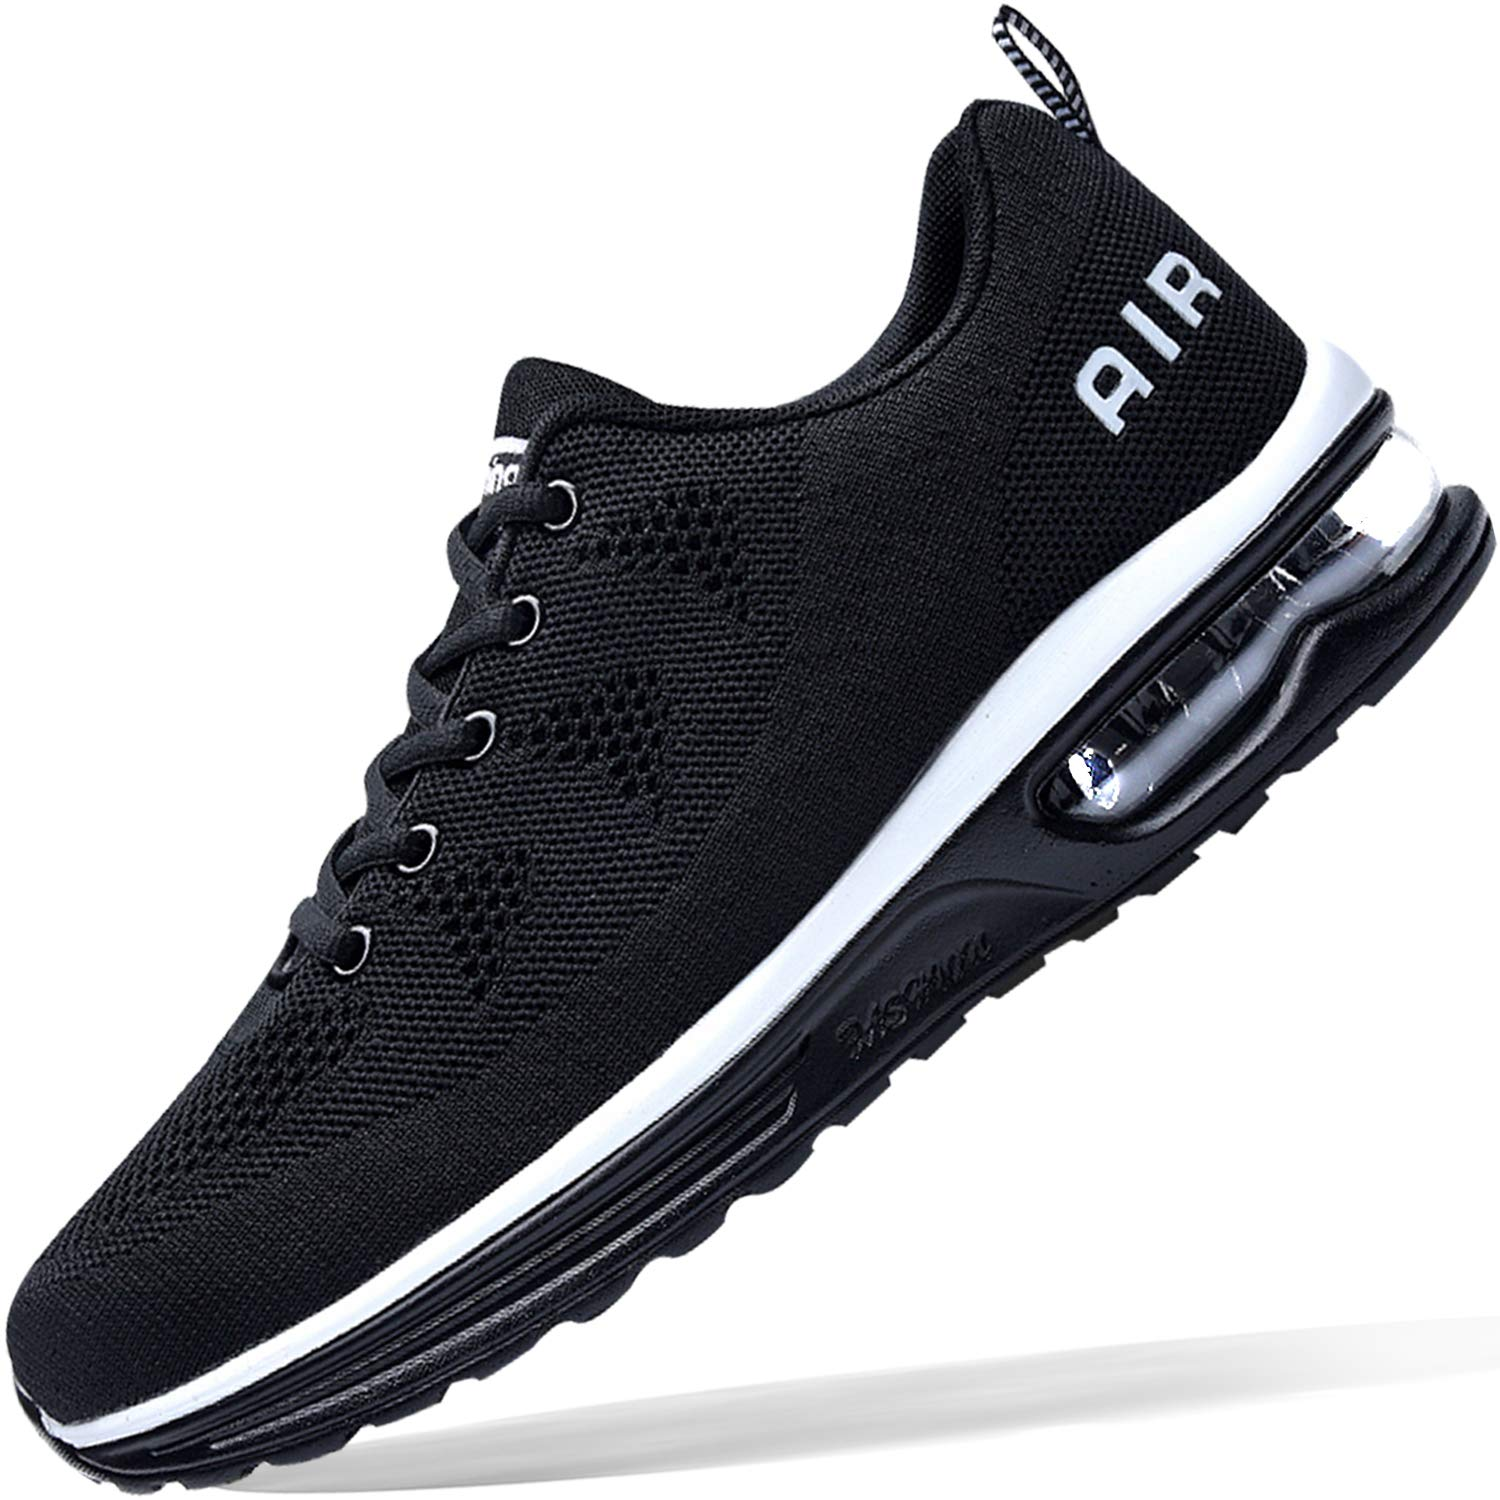 (2 pairs free shipping)Men's Sneakers Lightweight Air Cushion Gym Fashion Shoes Breathable Walking Running Athletic Sport